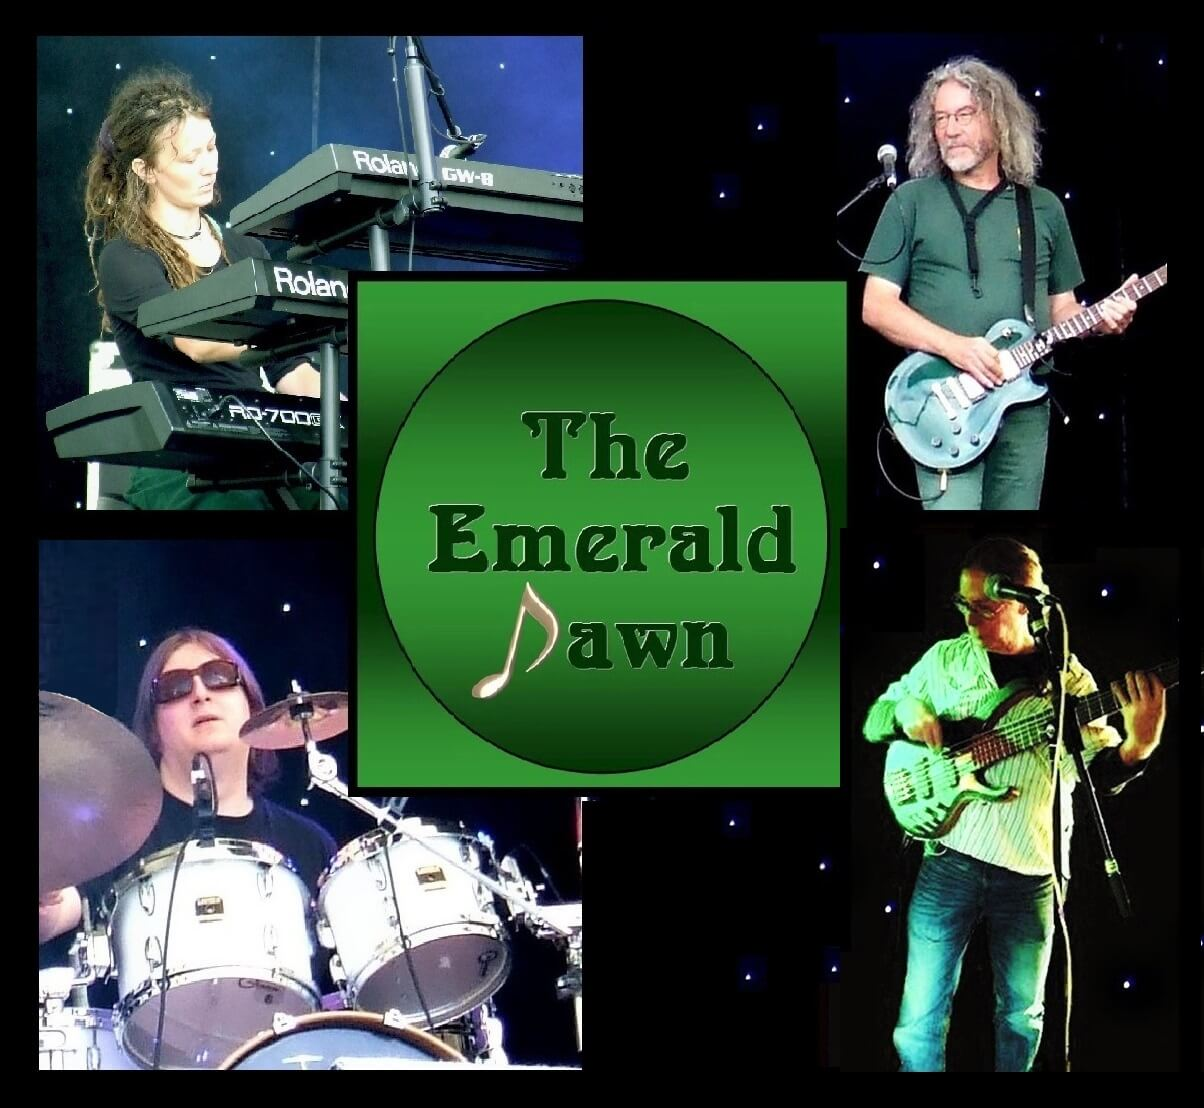 The Emerald Dawn